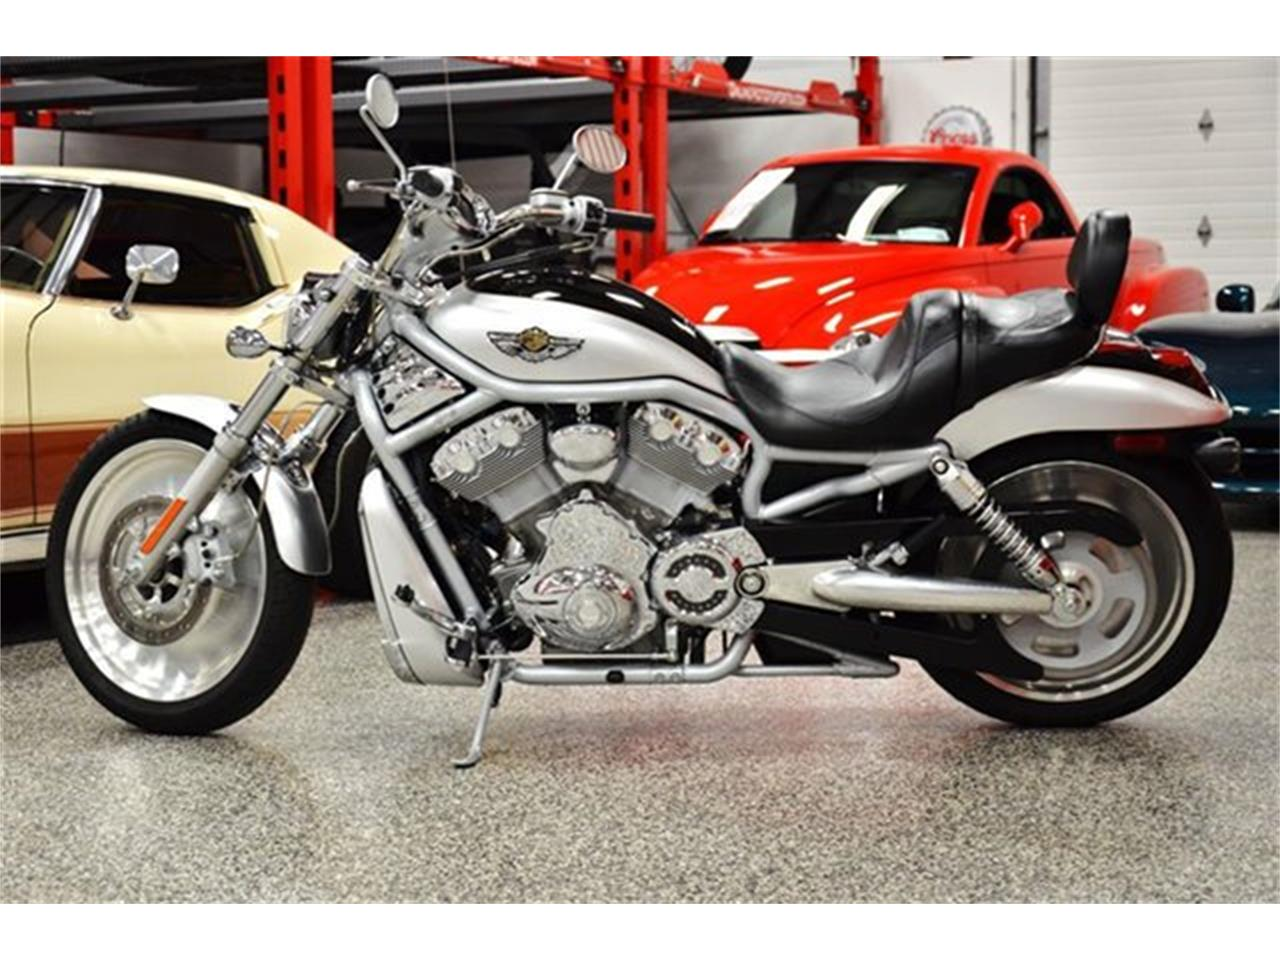 2003 Harley-Davidson VRSC for sale in Plainfield, IL – photo 3